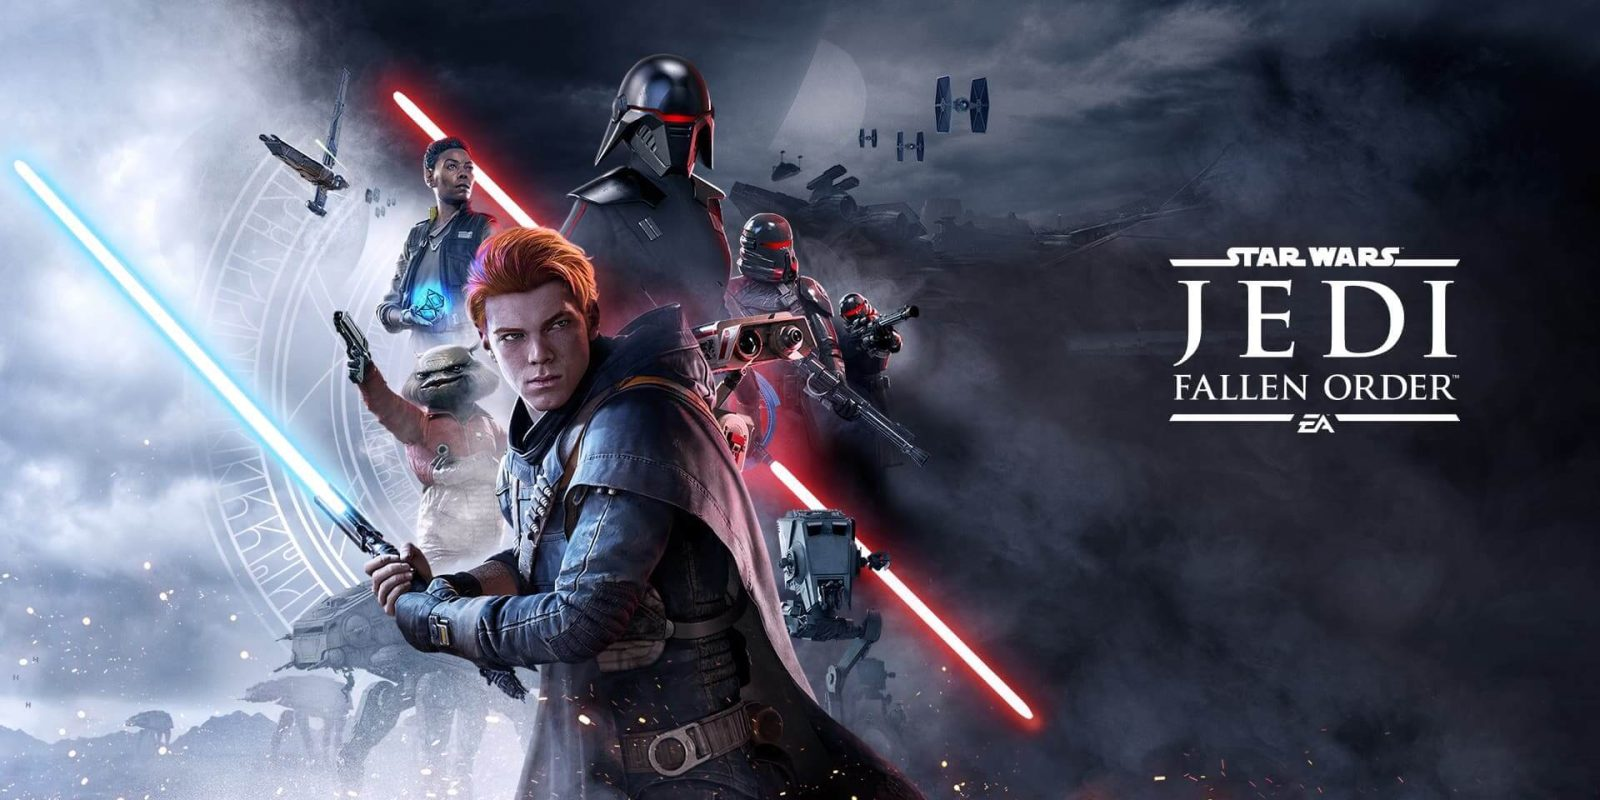 Early Cyber Monday game deals: Star Wars Jedi, Division 2, Rage 2, more